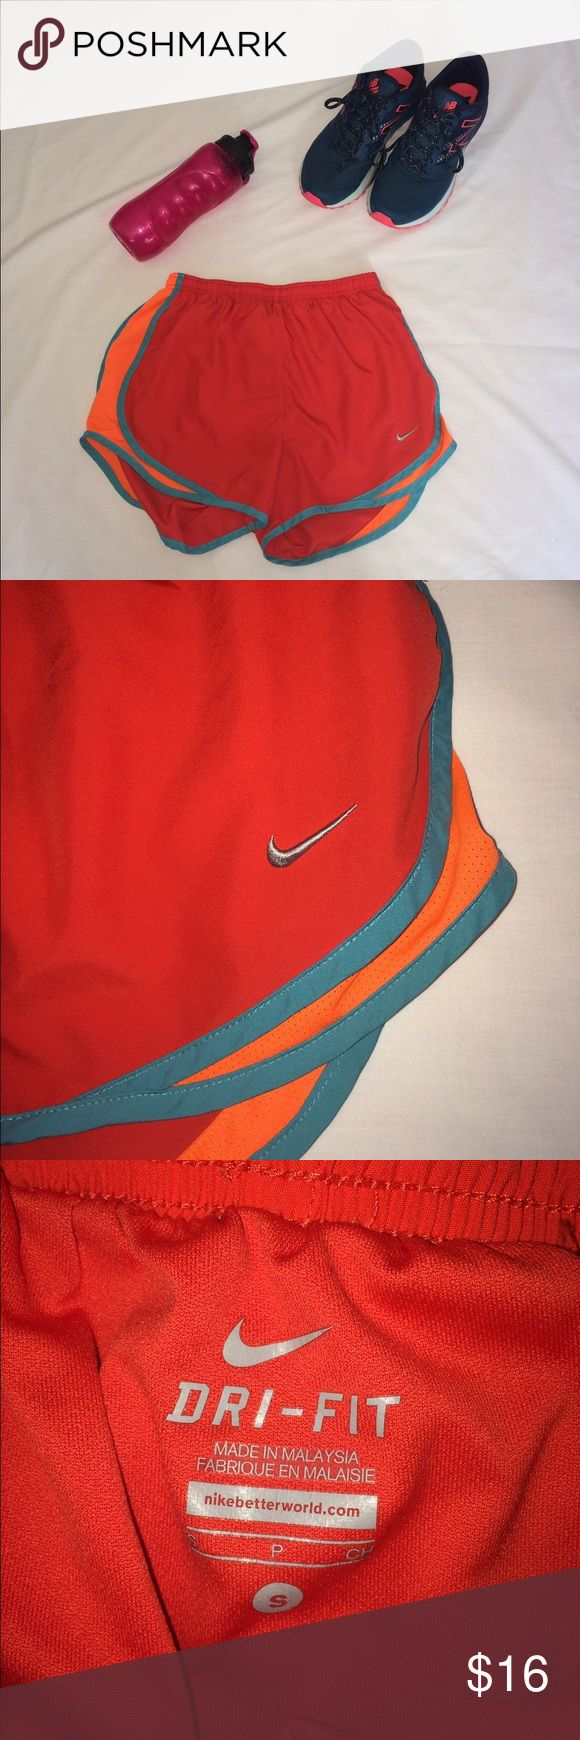 Nike dry fit running shorts Nike running shorts in great condition. Soft fabric with no holes or loose threads. Tag says small but can fit a medium! NWOT! I also do 3+ items 15% bundles and accept reasonable offers  fast shipping guaranteed and customer satisfaction!  Nike Other